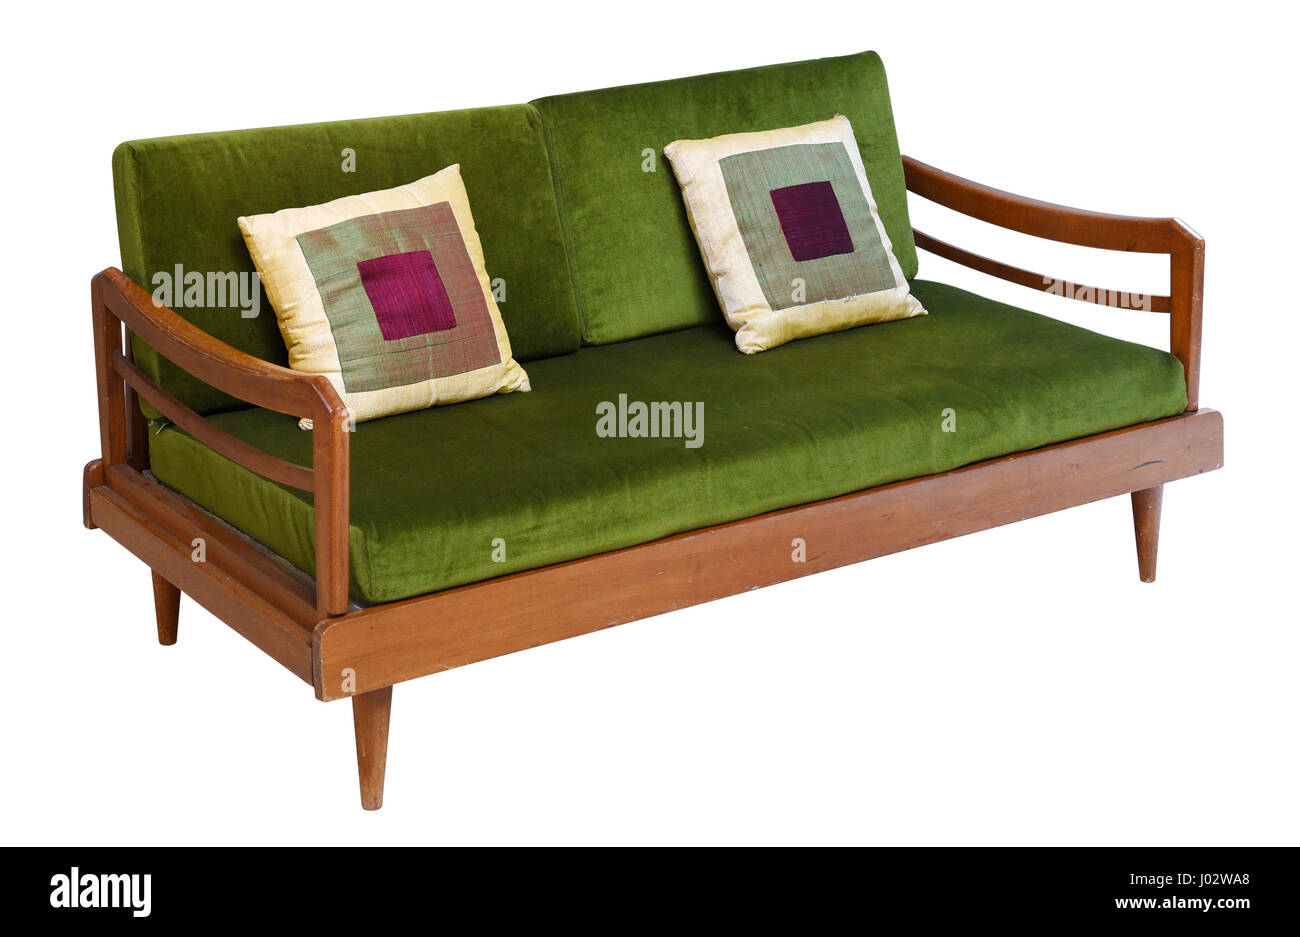 Green velvet sofa of fifties vintage design on short legs and wooden base isolated on white background Stock Photo